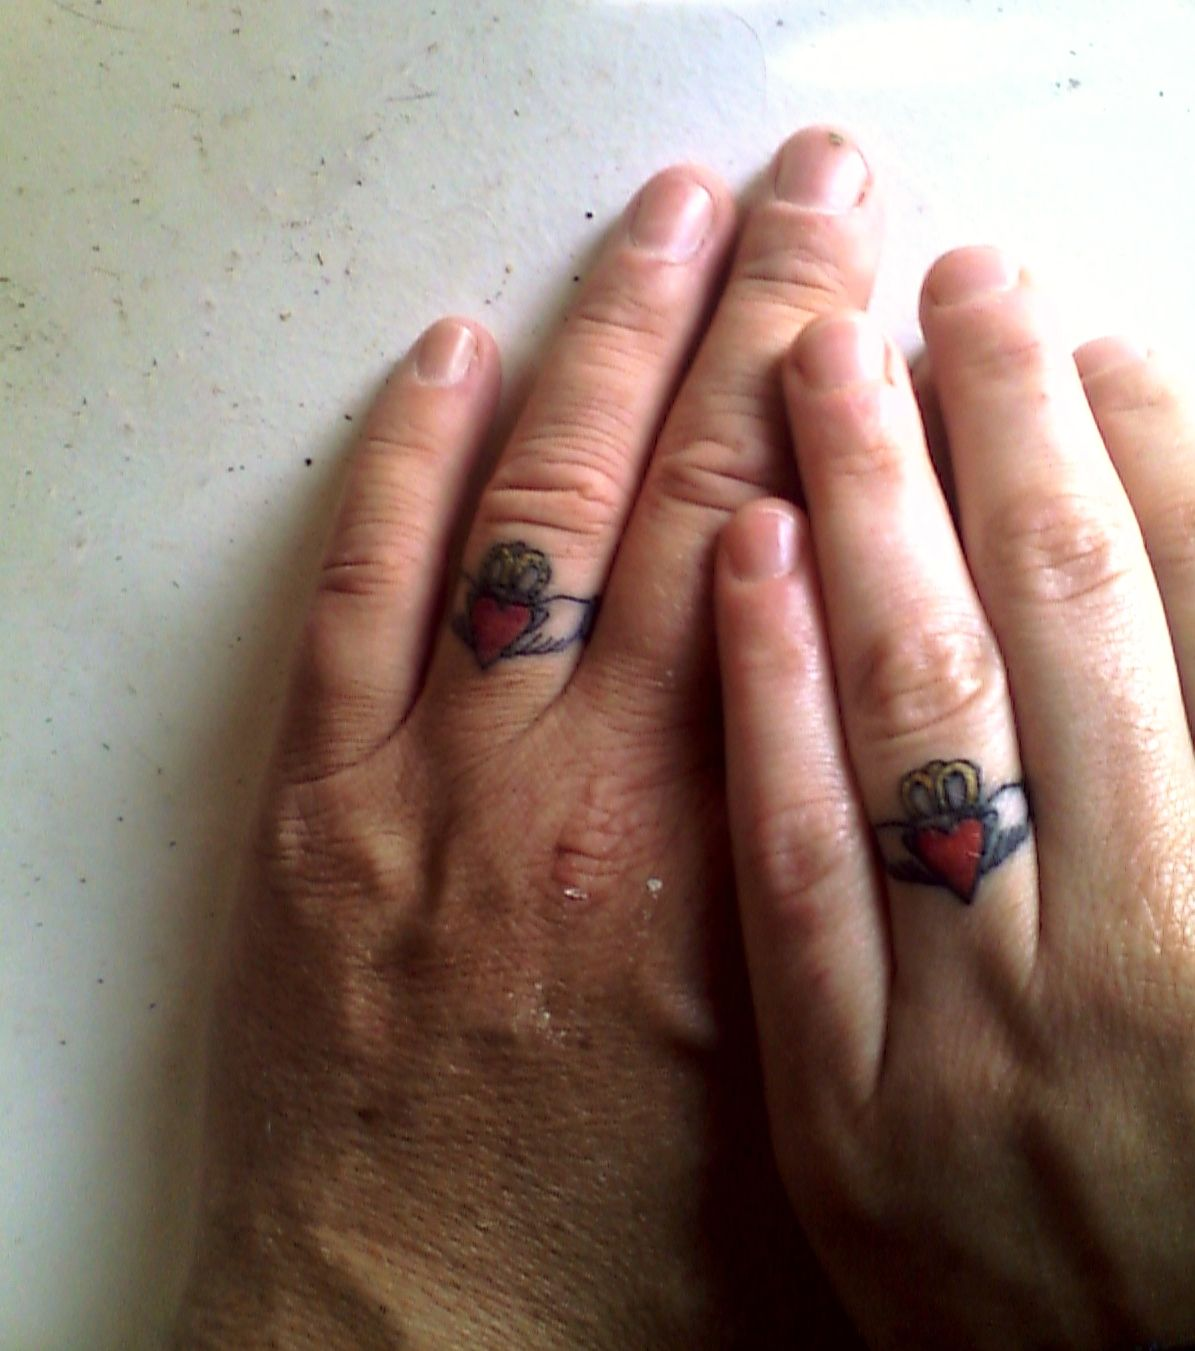 My Husband And I Got Claddagh Wedding Ring Tattoos To Celebrate Our